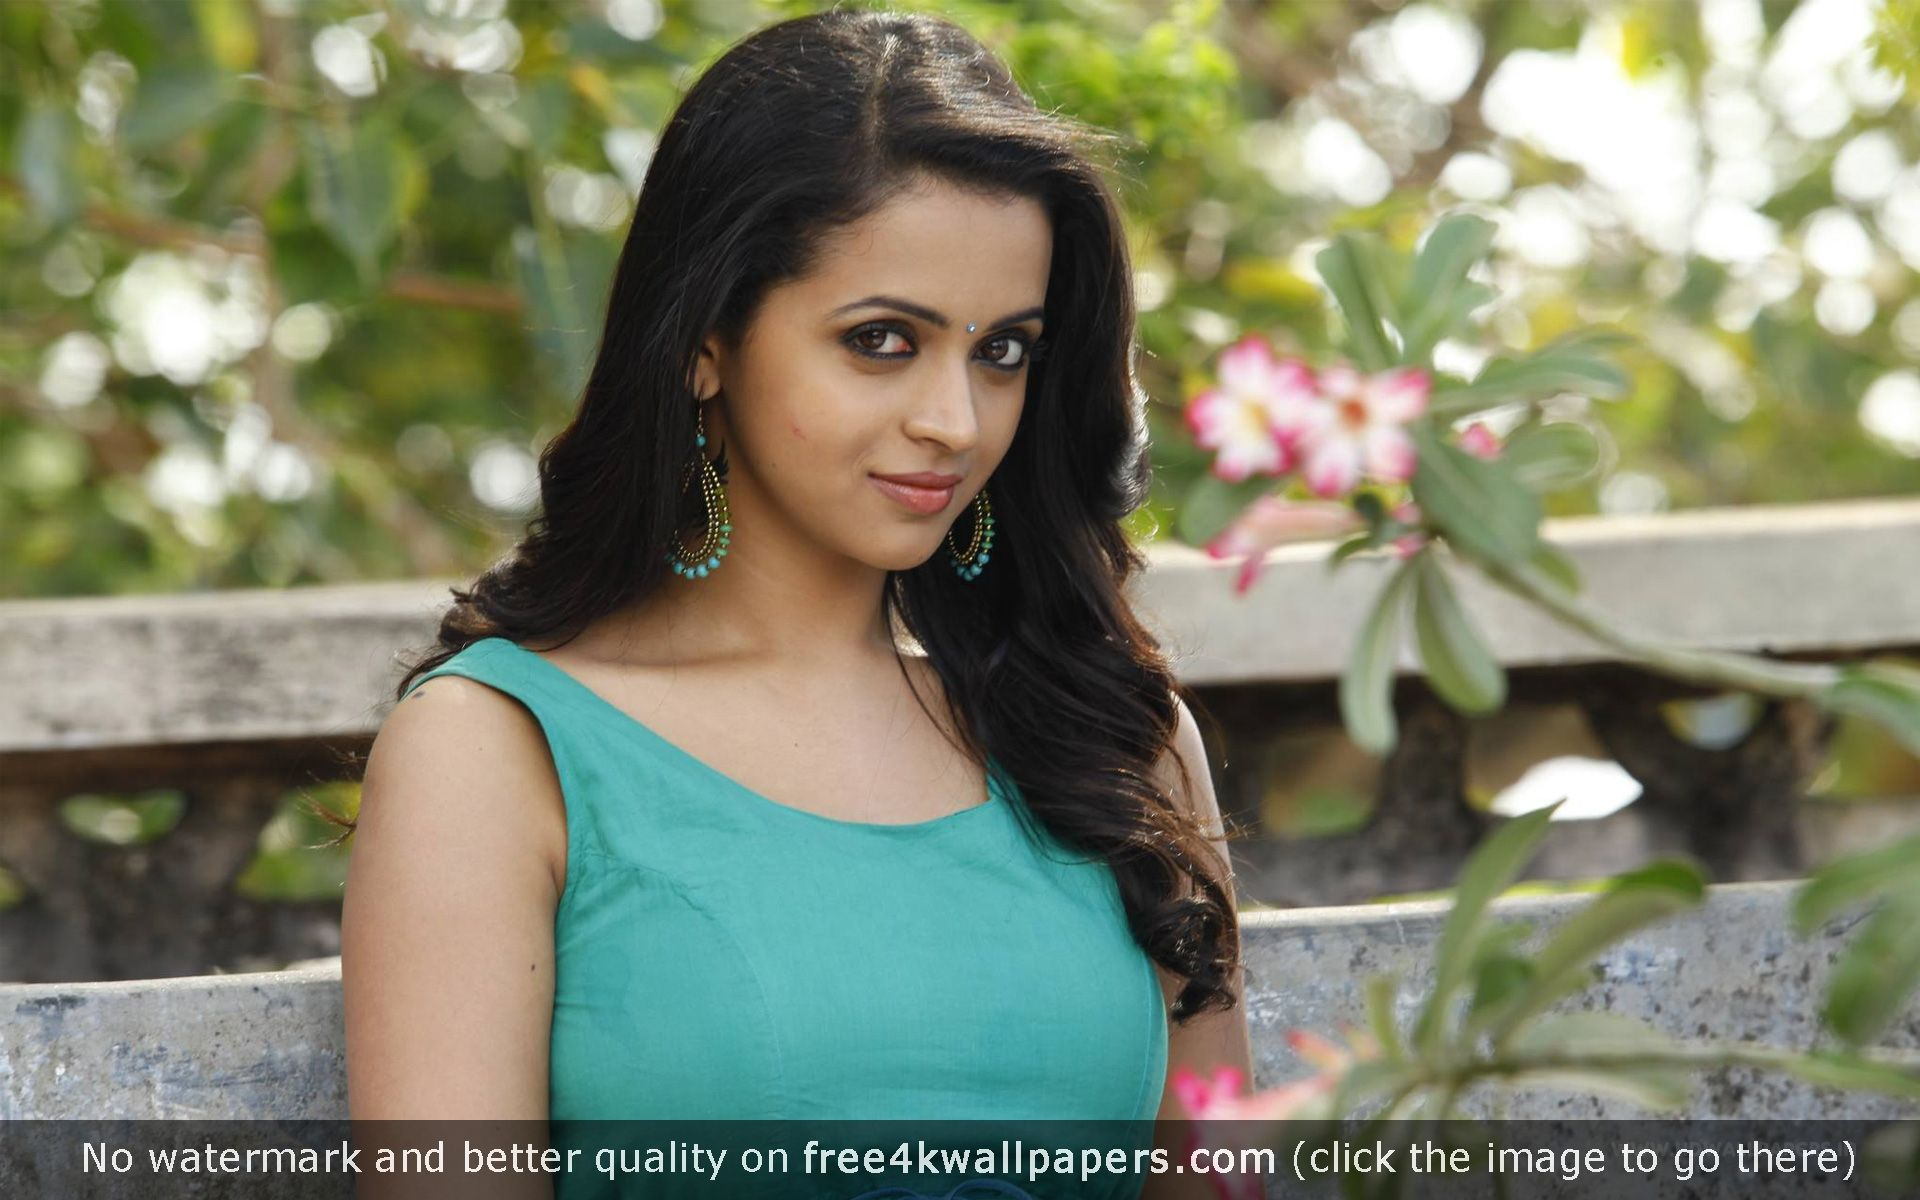 Bhavana Tamil Actress Wallpaper Bhavana Actress Actress Wallpaper